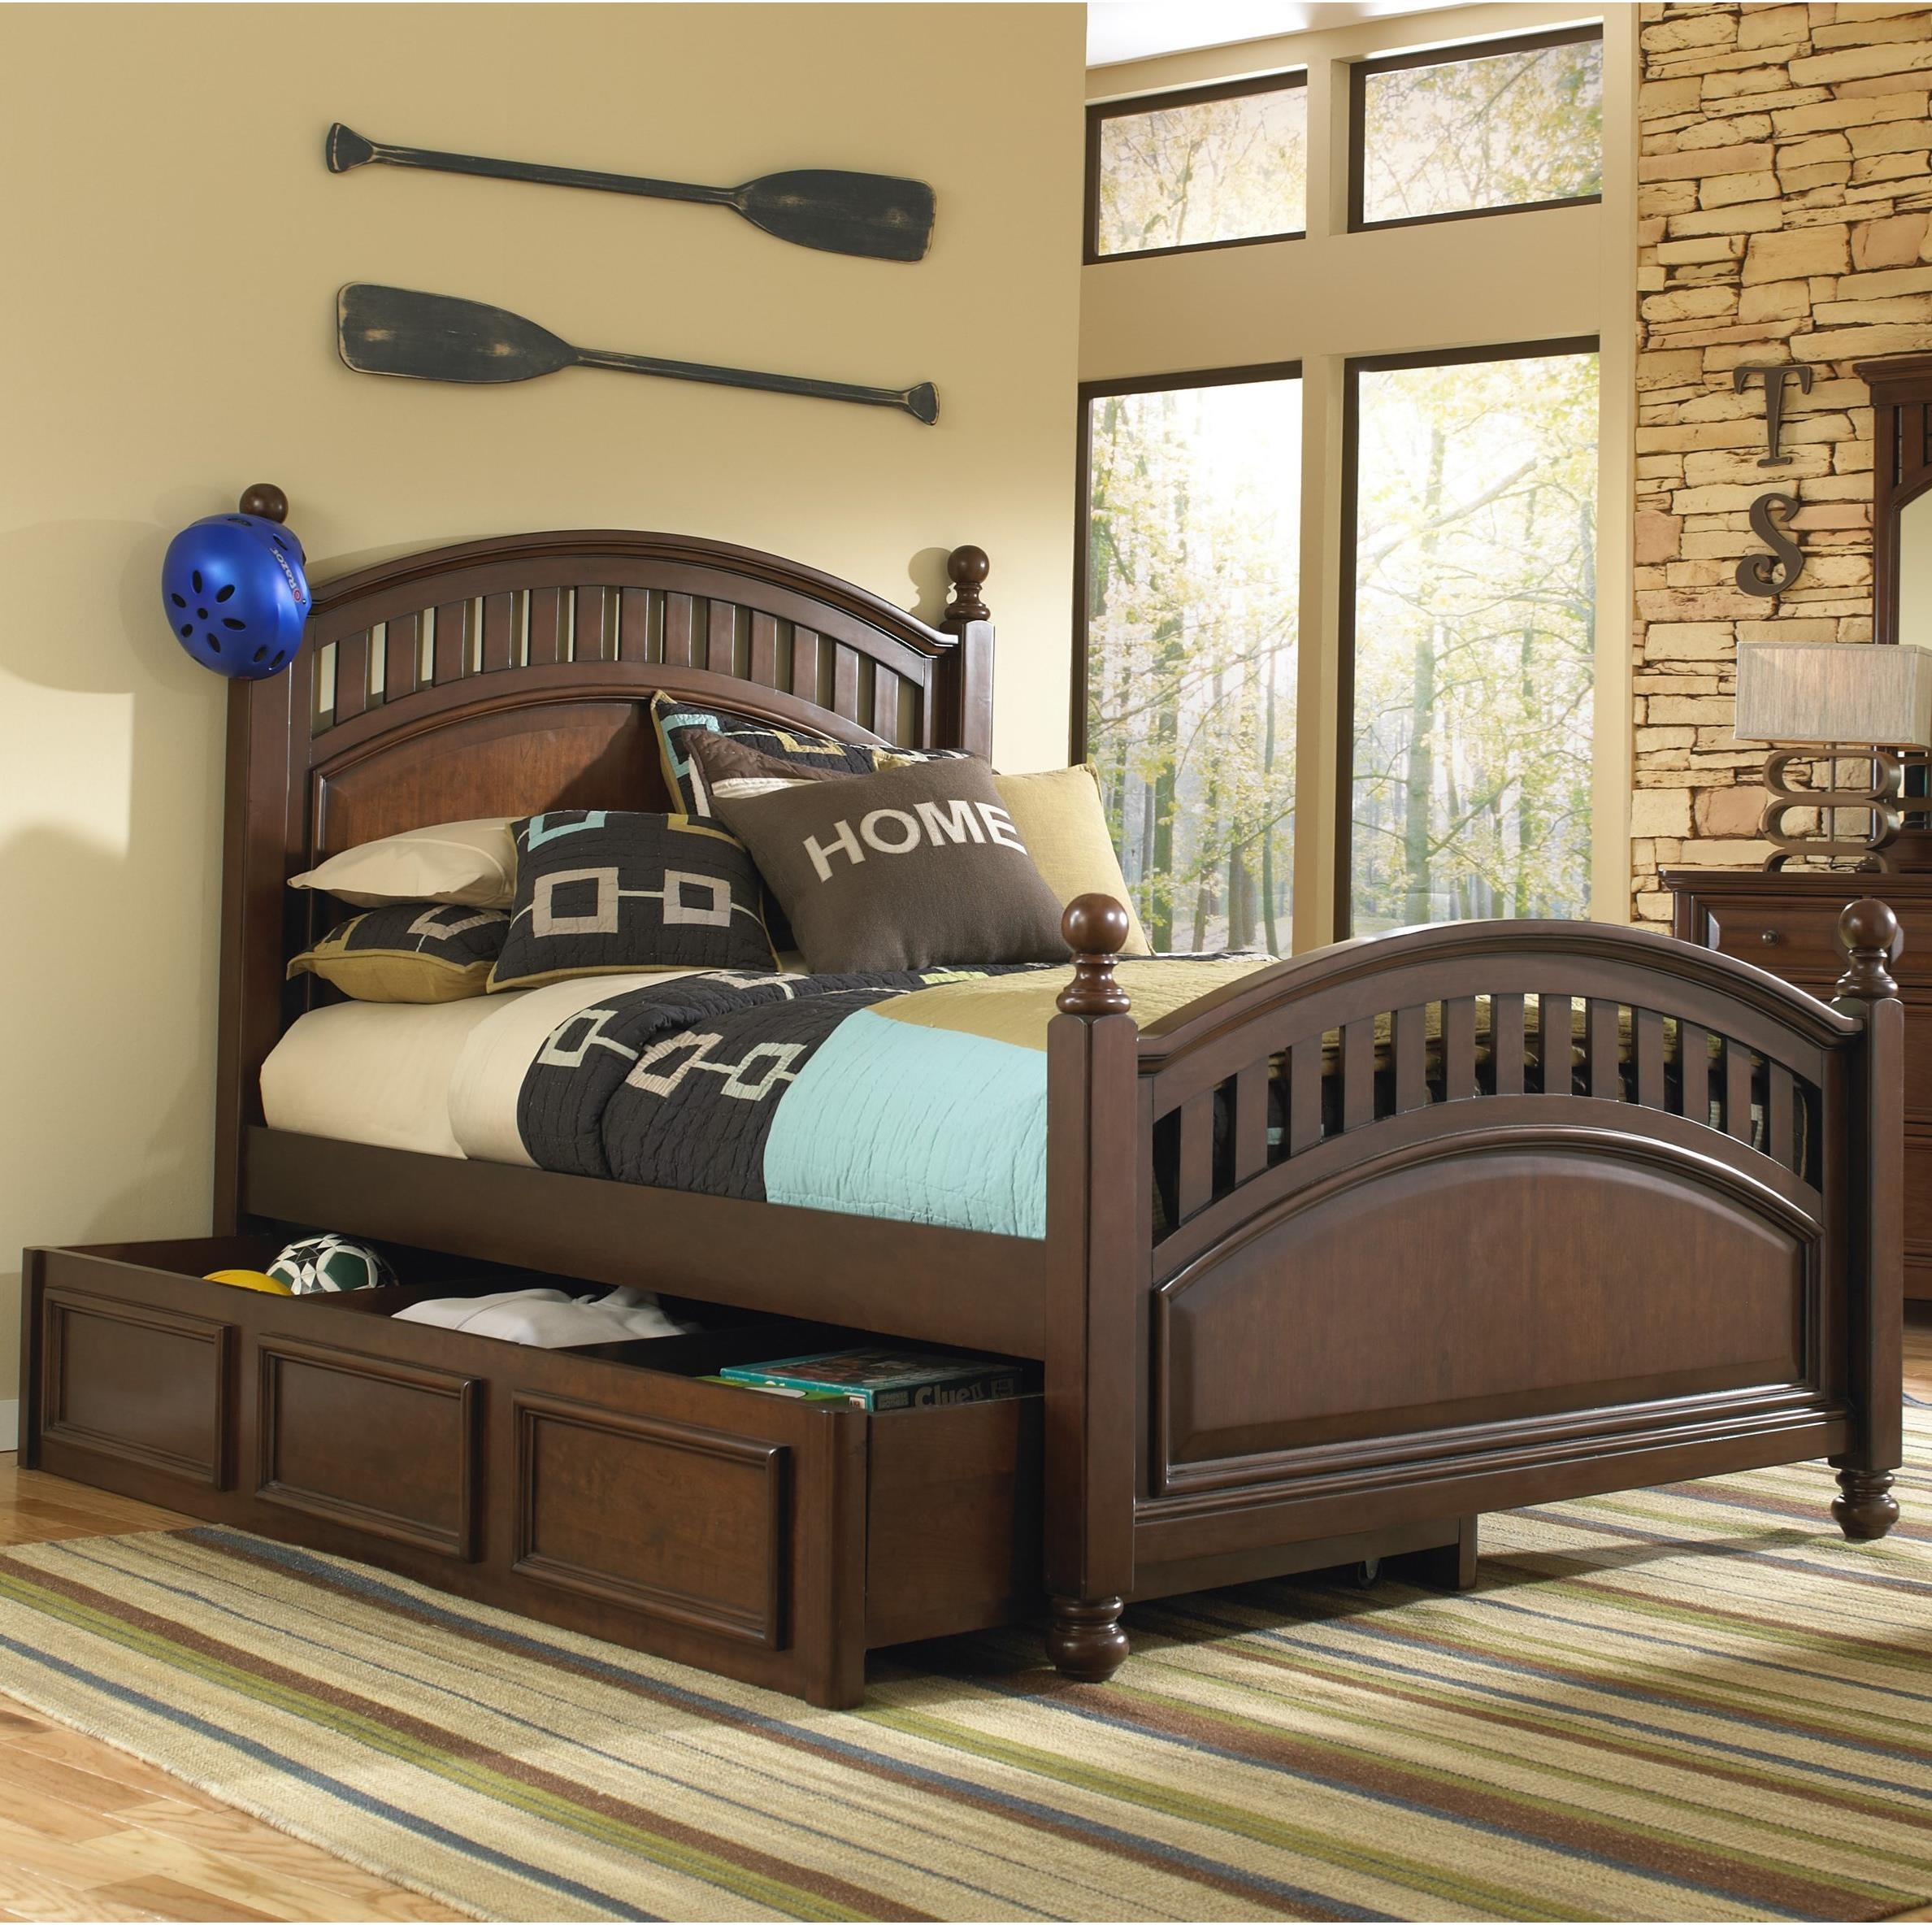 Kidz Gear Griffin Full Low Post Bed - Item Number: 8468-632+633+401+801